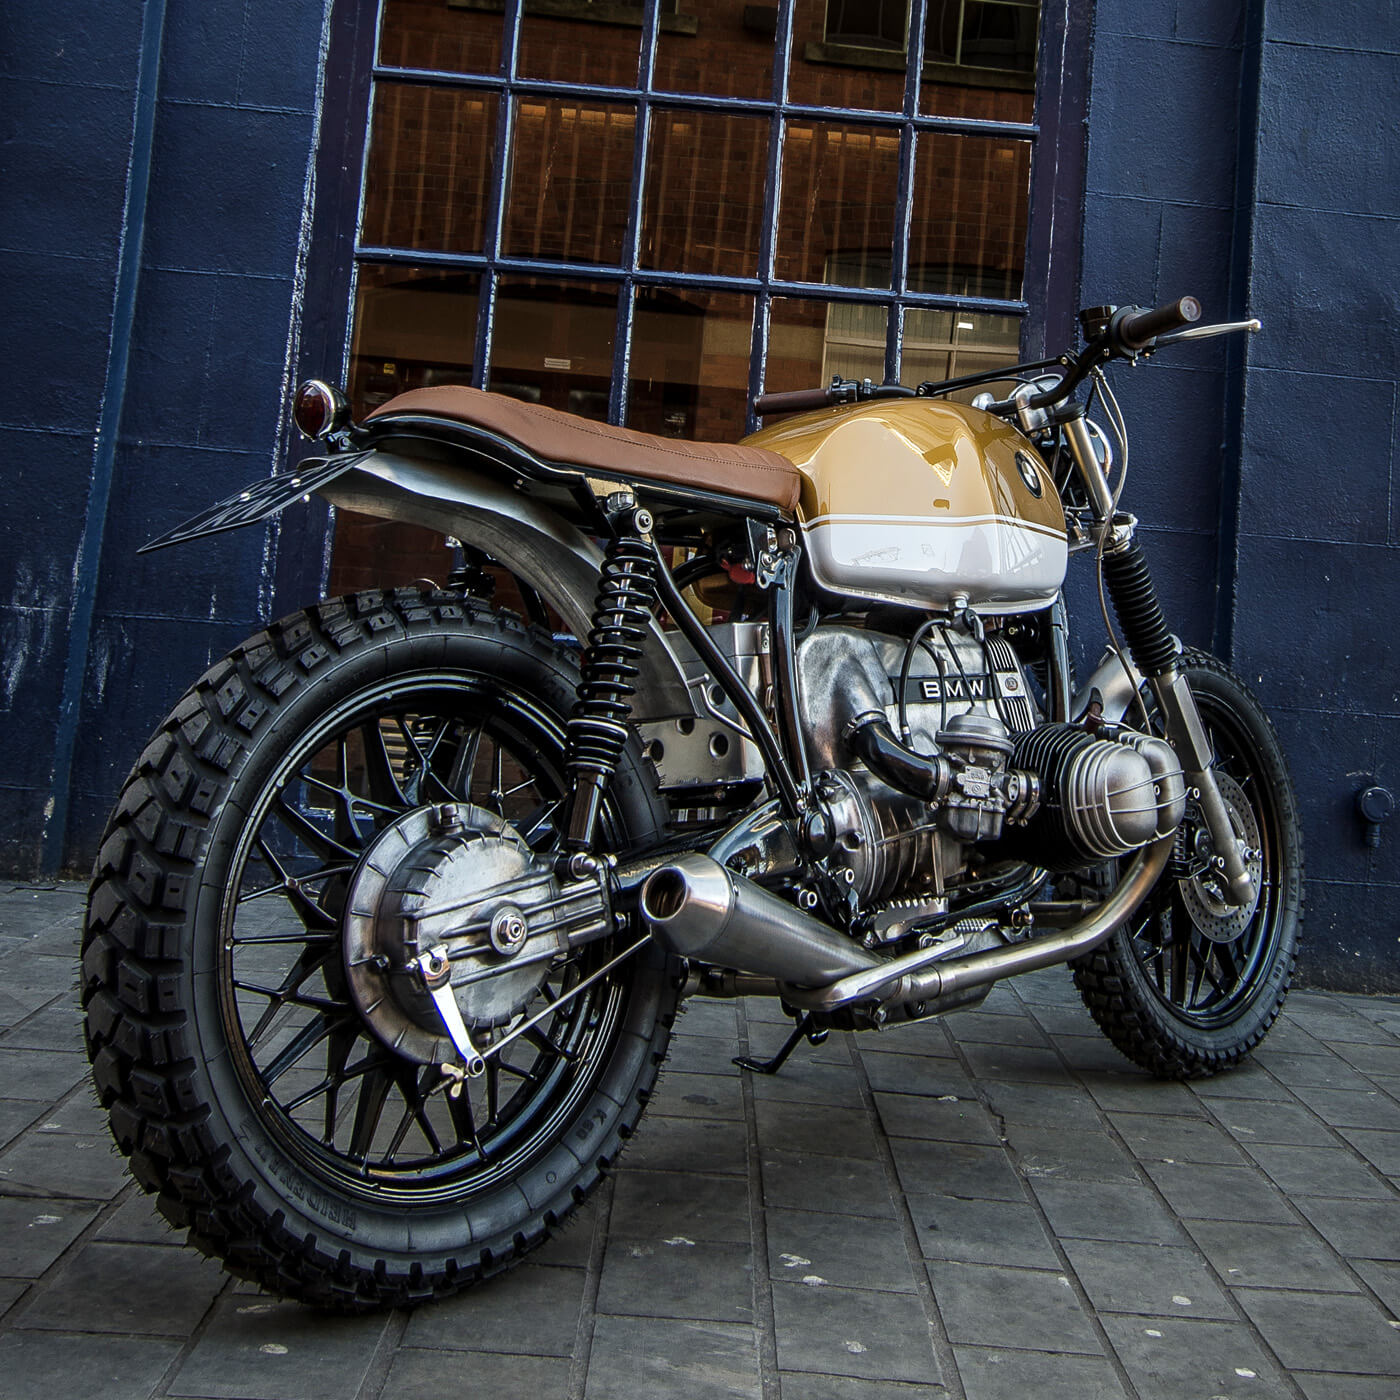 BMW R80 Scrambler by Down & Out 2